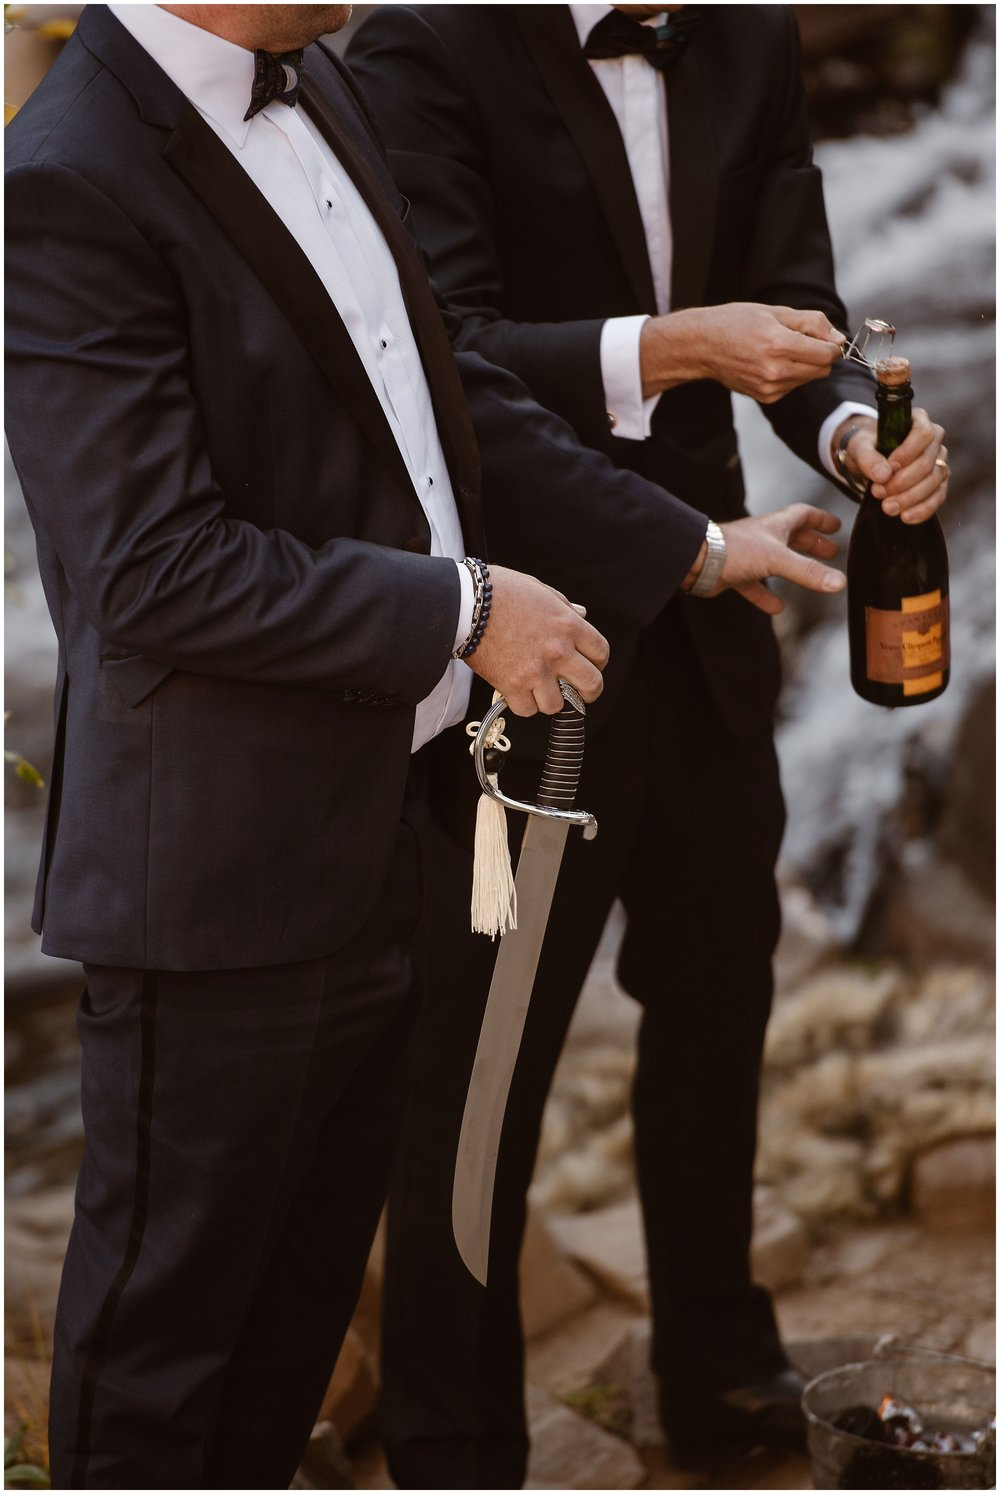 The newlywed couple holds a bottle of champagne and a Samurai sword in their hands after their elopement ceremony. Brian and Ernie planned to incorporate one of their unique eloping ideas into their small simple wedding — cutting the champagne cork off with a sword.